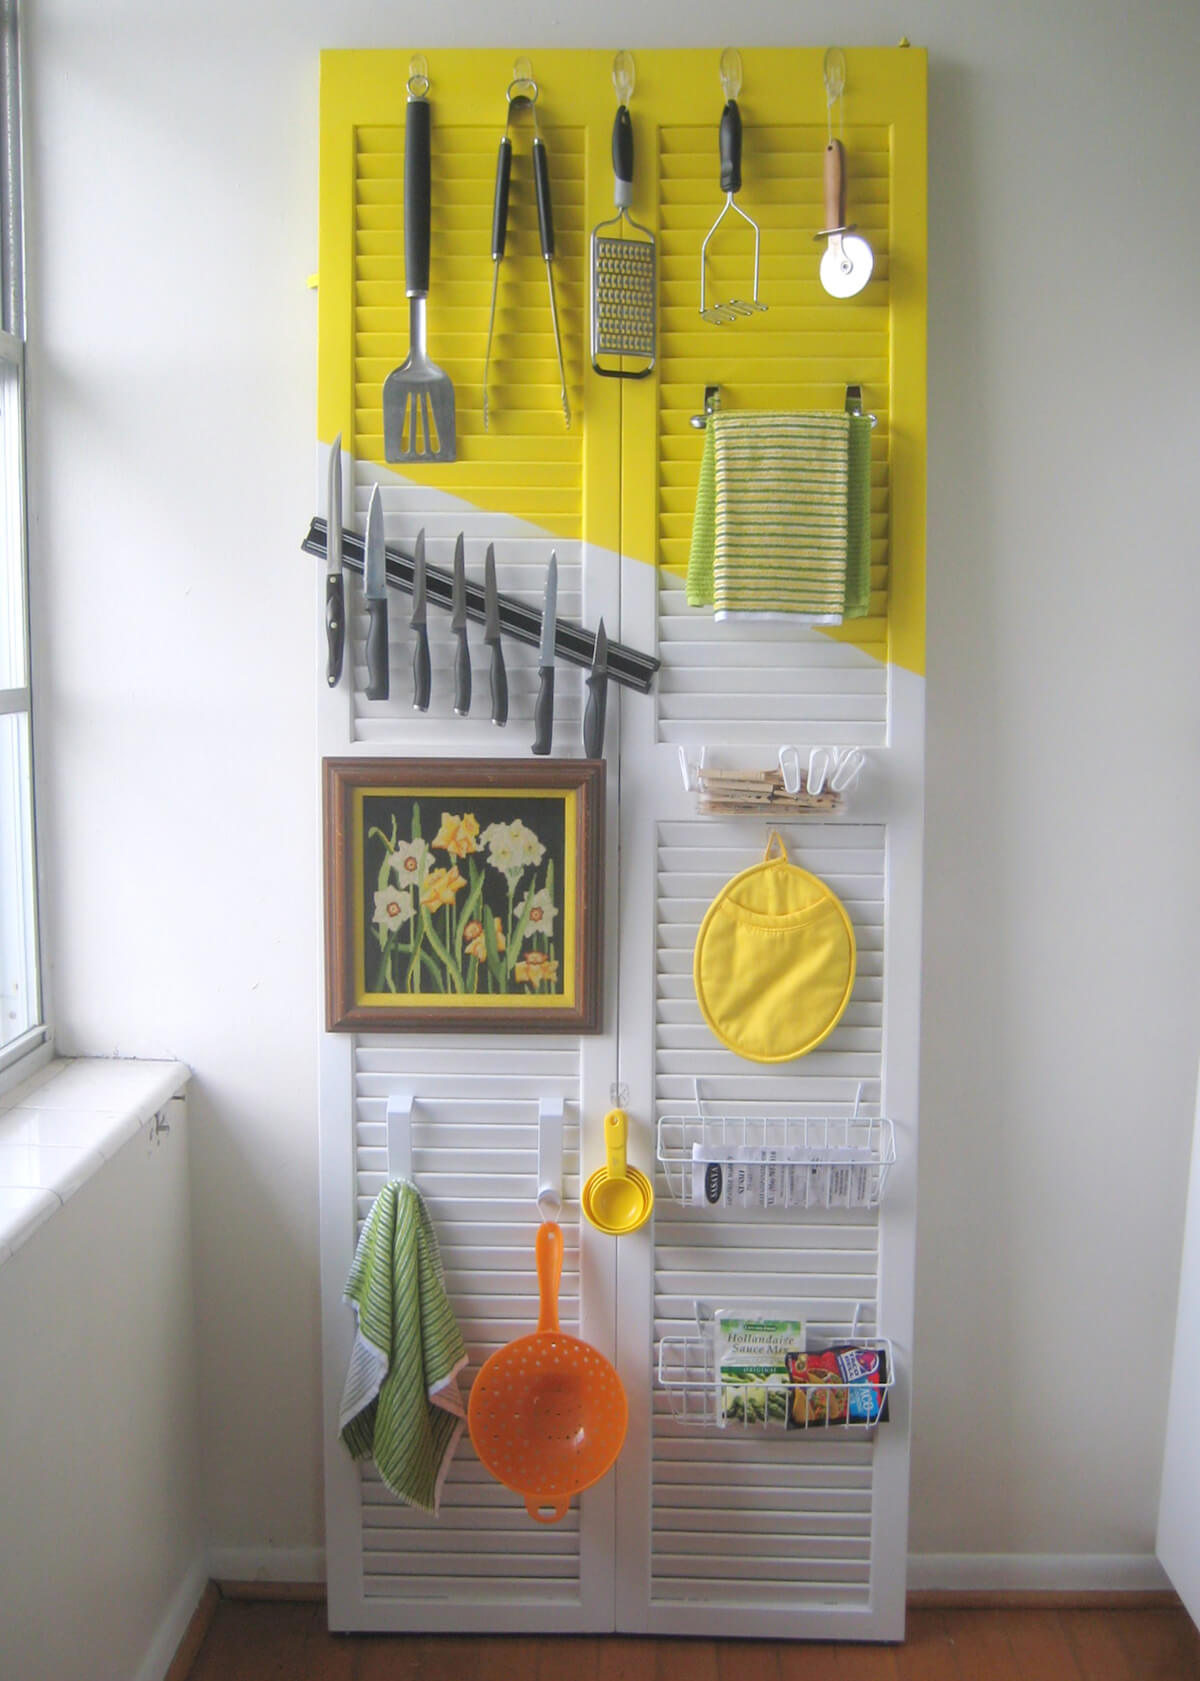 DIY Shutter Kitchen Tool Organizer